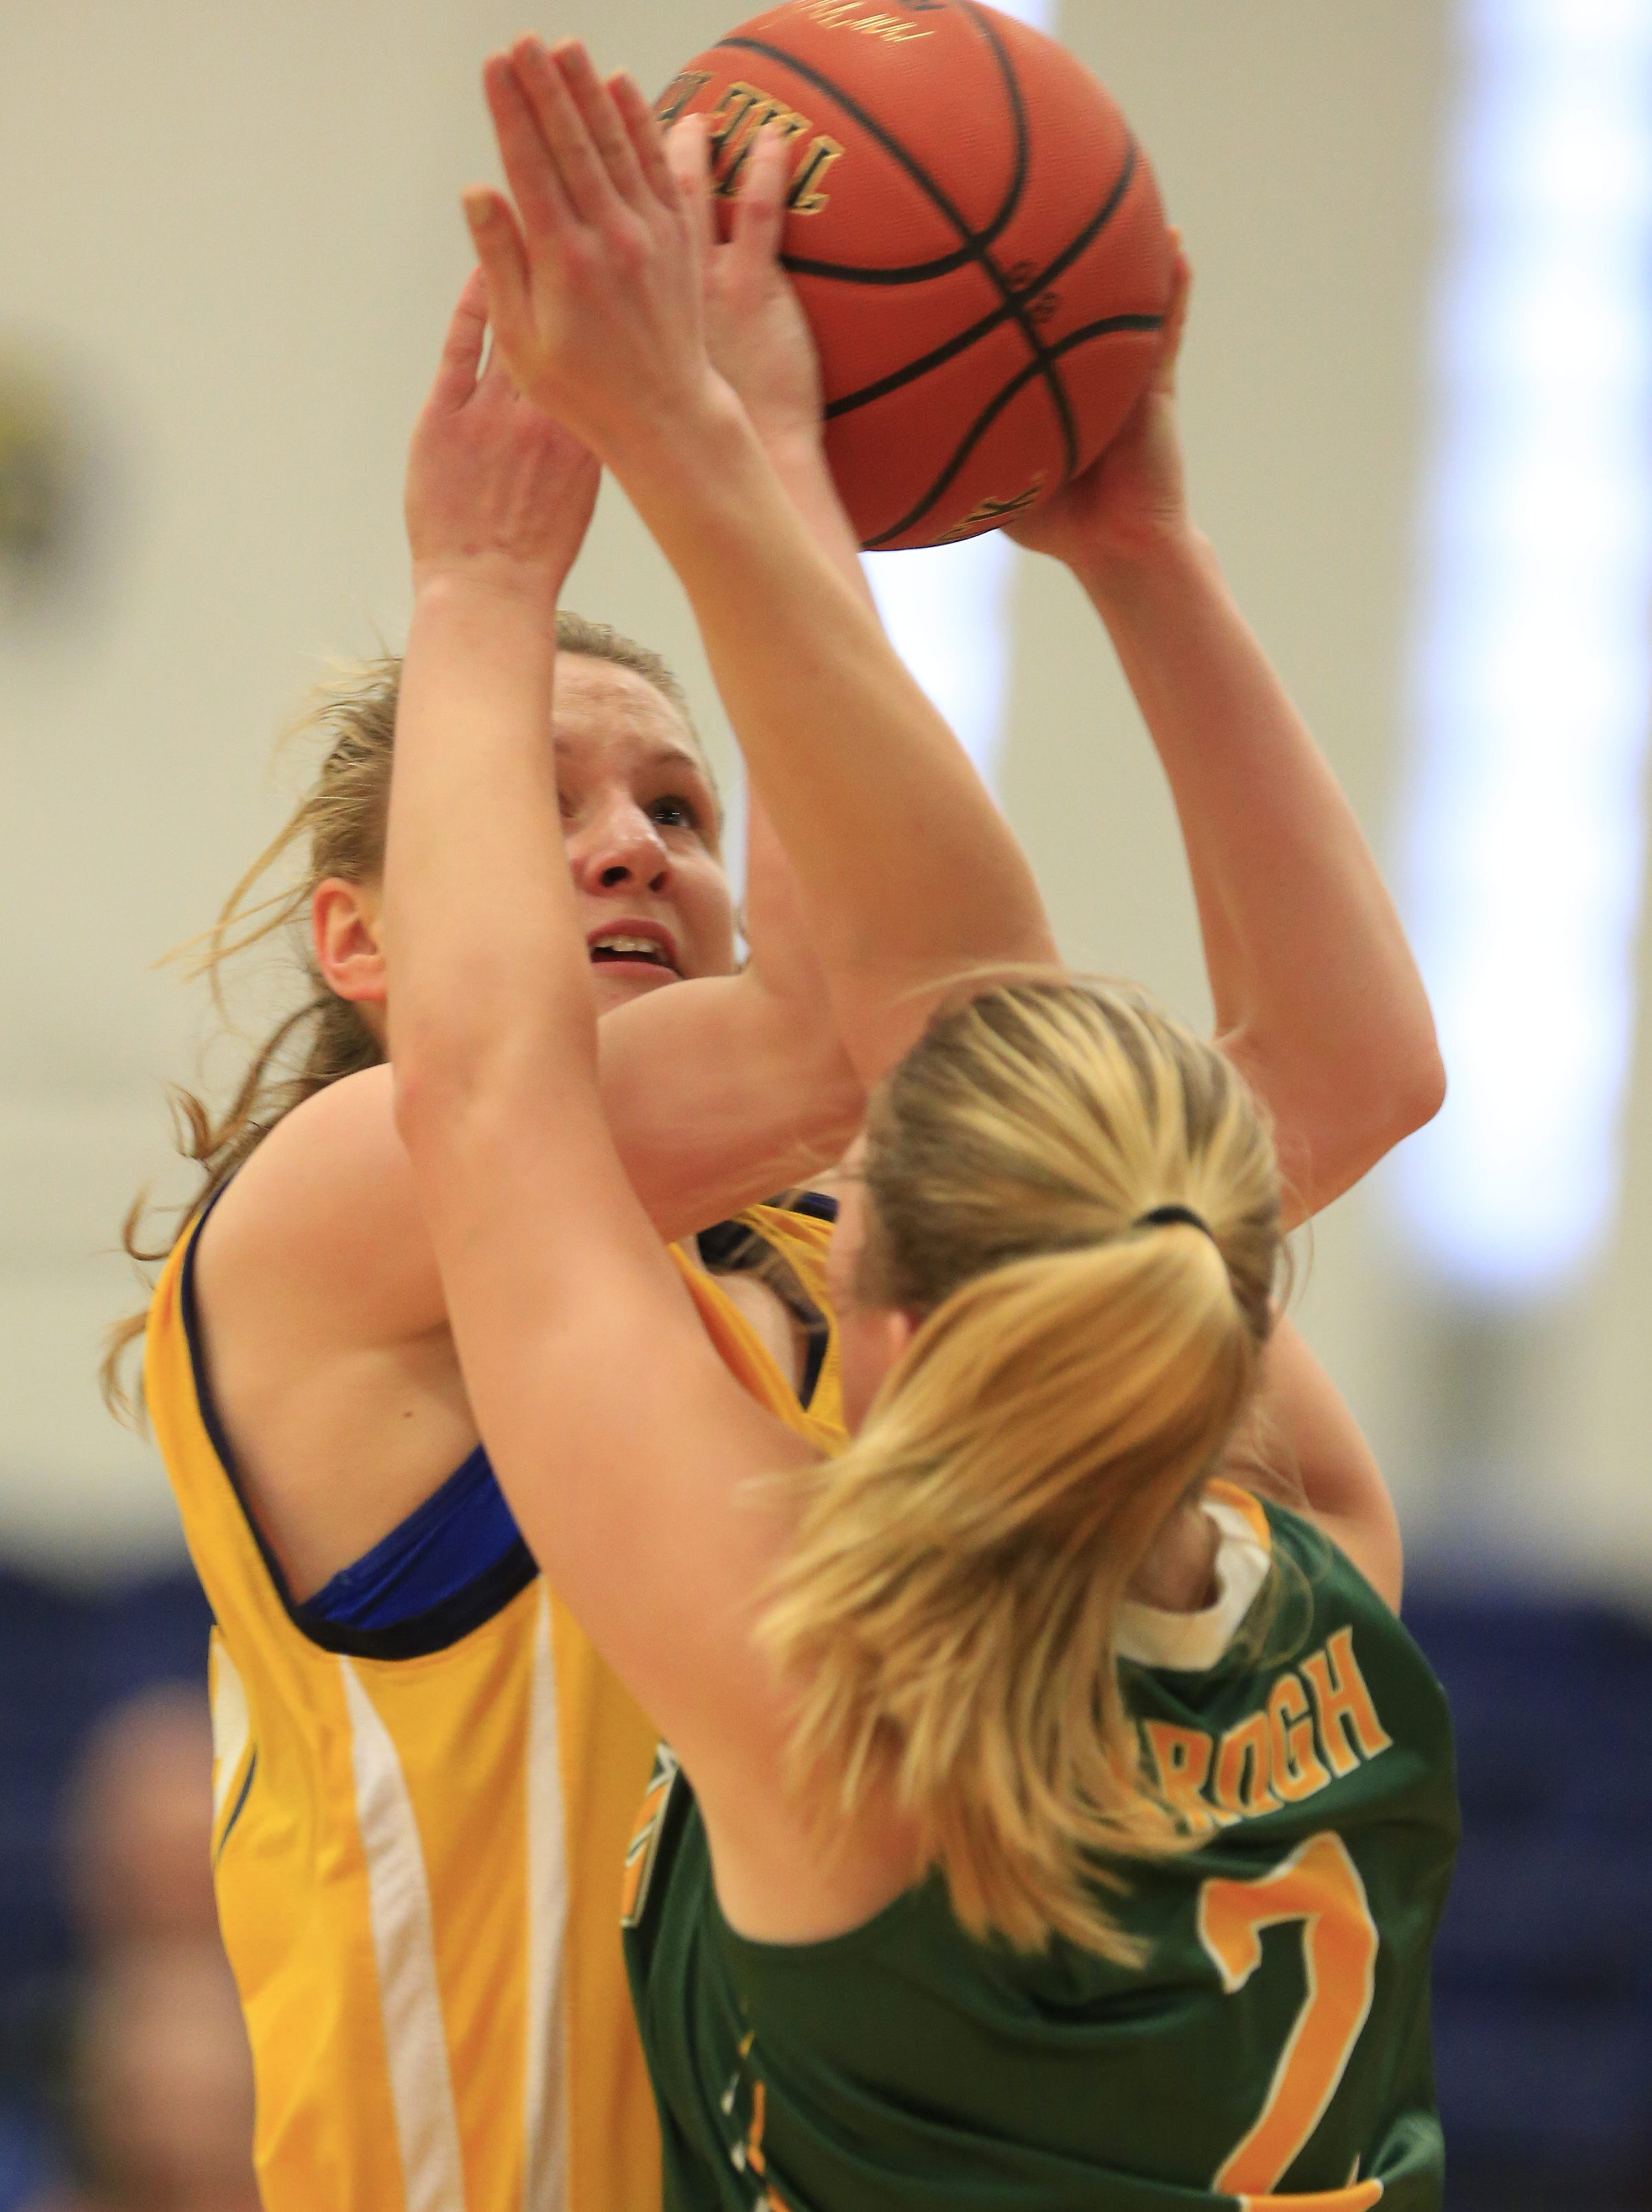 Emily Weber returns for Canisius after missing last season with a knee injury. (Harry Scull Jr./Buffalo News)